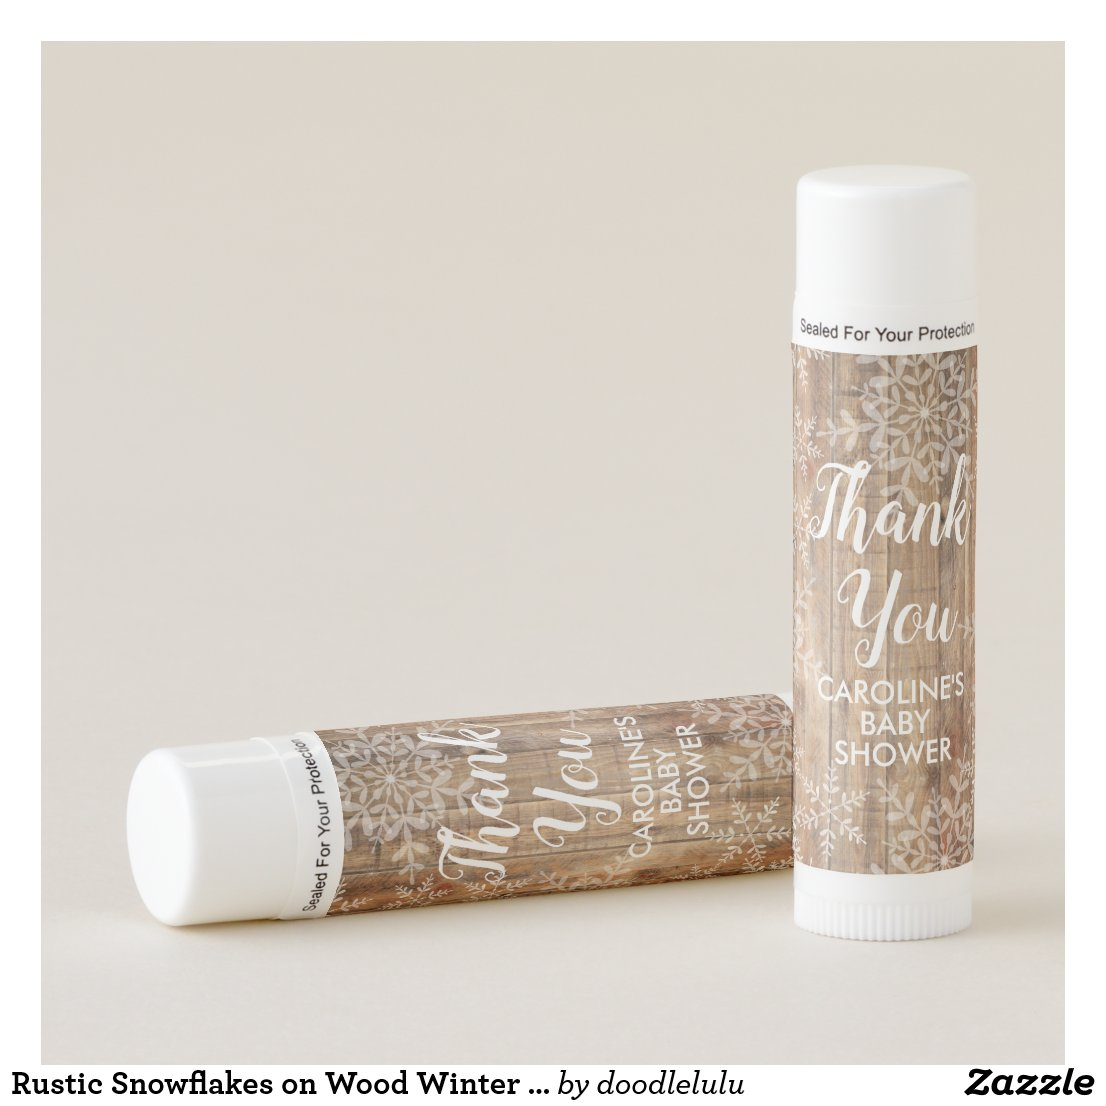 Rustic Snowflakes on Wood Winter Baby Shower Lip Balm